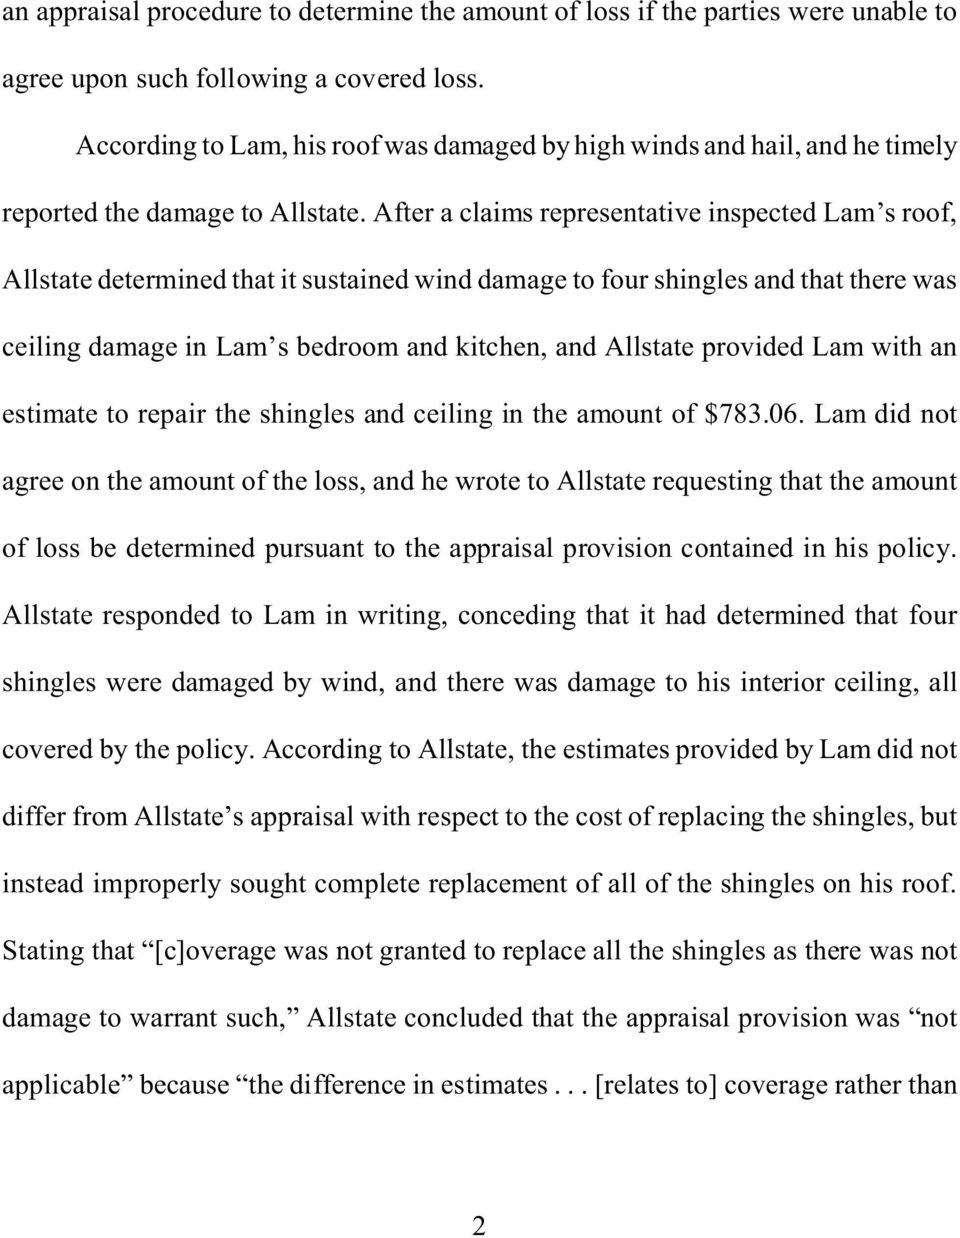 After a claims representative inspected Lam s roof, Allstate determined that it sustained wind damage to four shingles and that there was ceiling damage in Lam s bedroom and kitchen, and Allstate